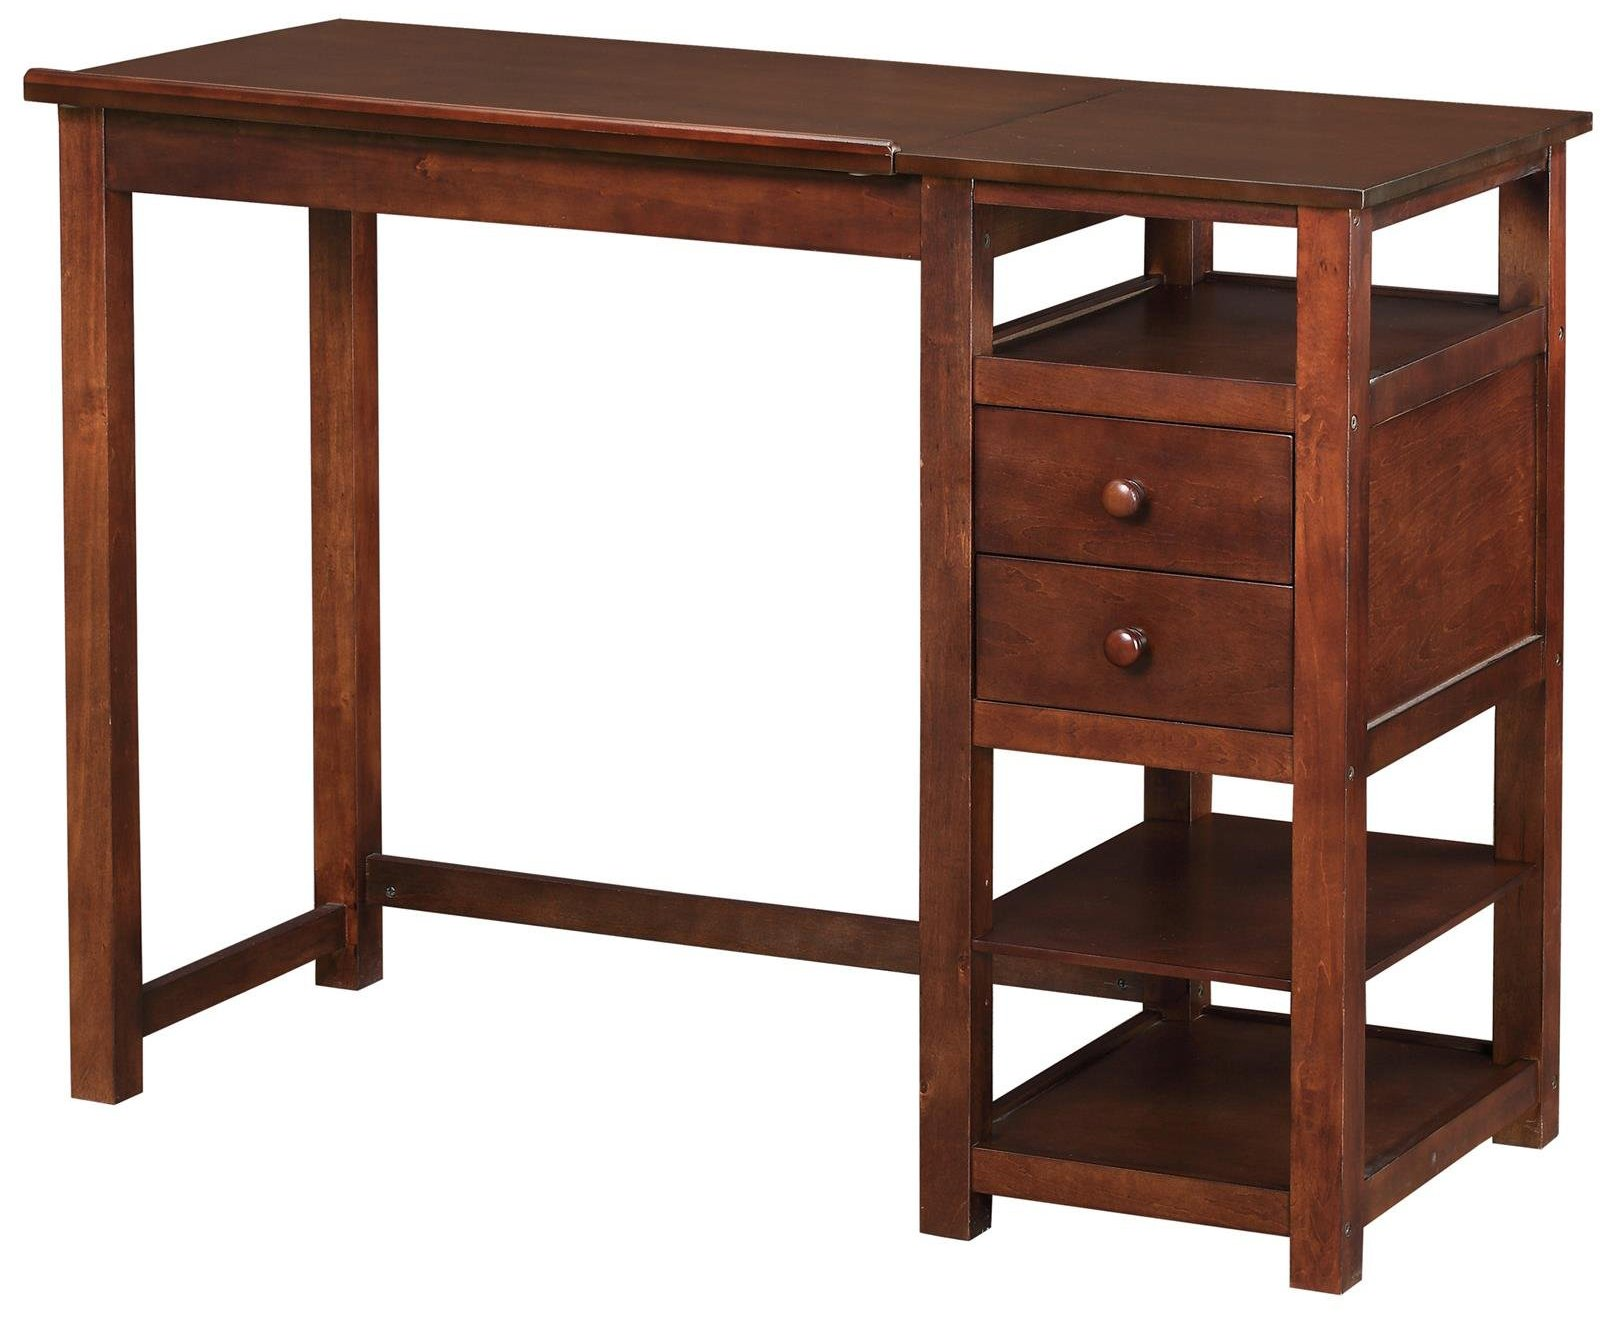 Dorel Living Drafting and Craft Counter Height Desk, Espresso by Dorel Living